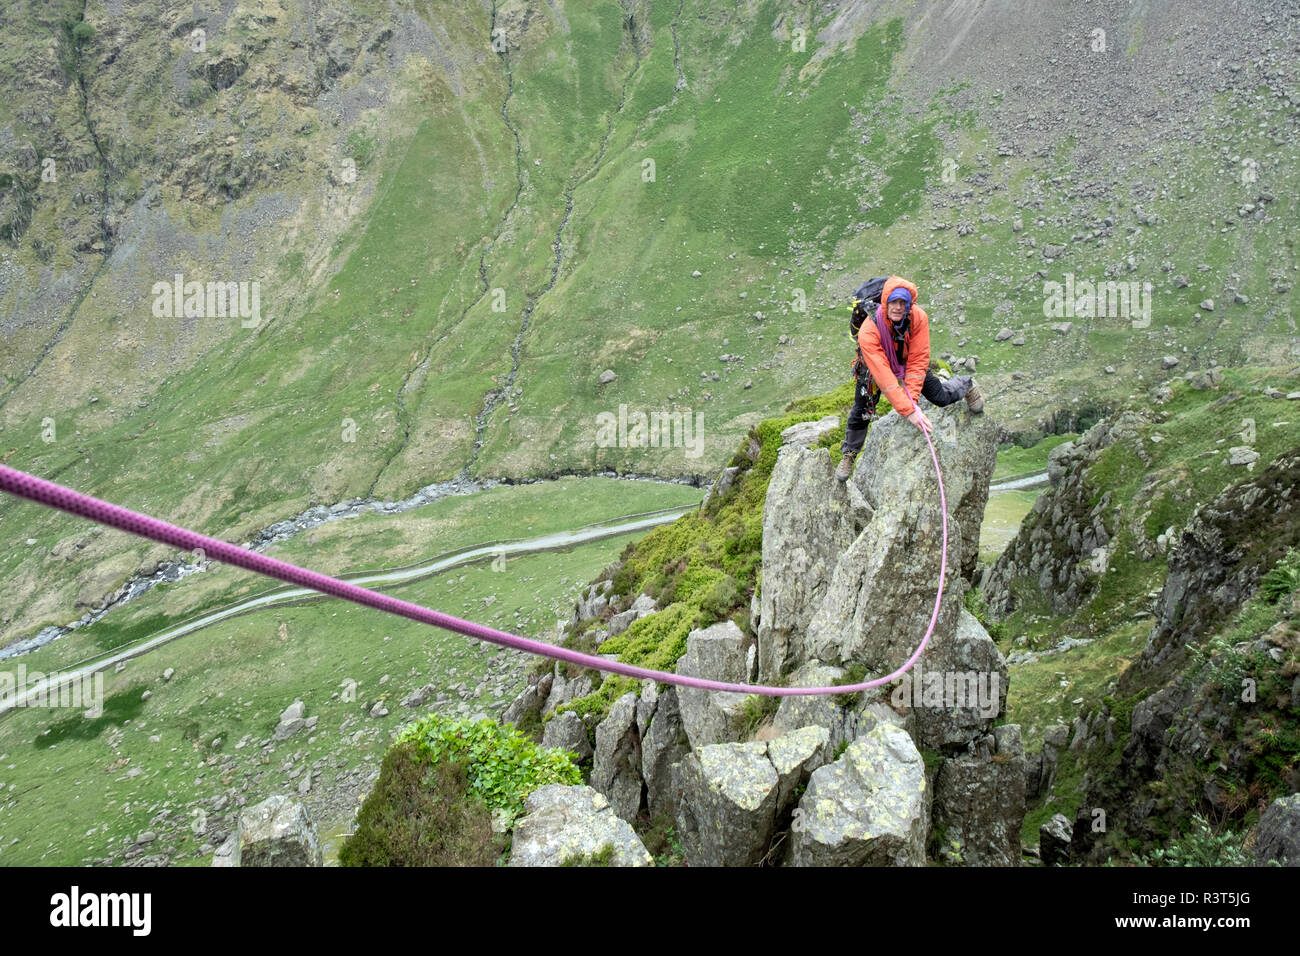 UK, Lake District, Longsleddale valley, Buckbarrow Crag, man climbing on rock - Stock Image